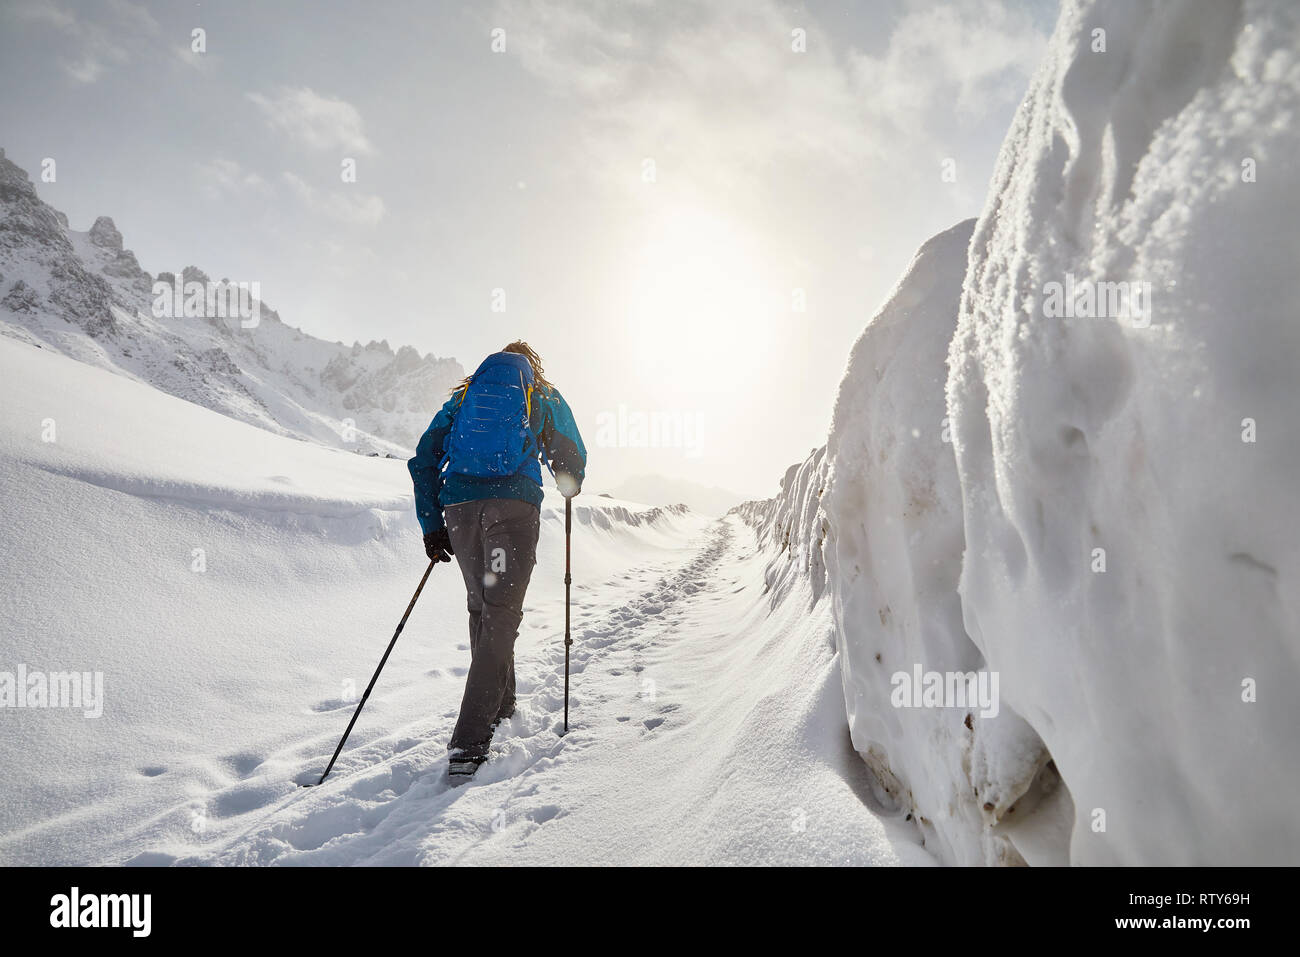 Tourist with blue backpack walking on the snow road in the mountains at snowfall - Stock Image